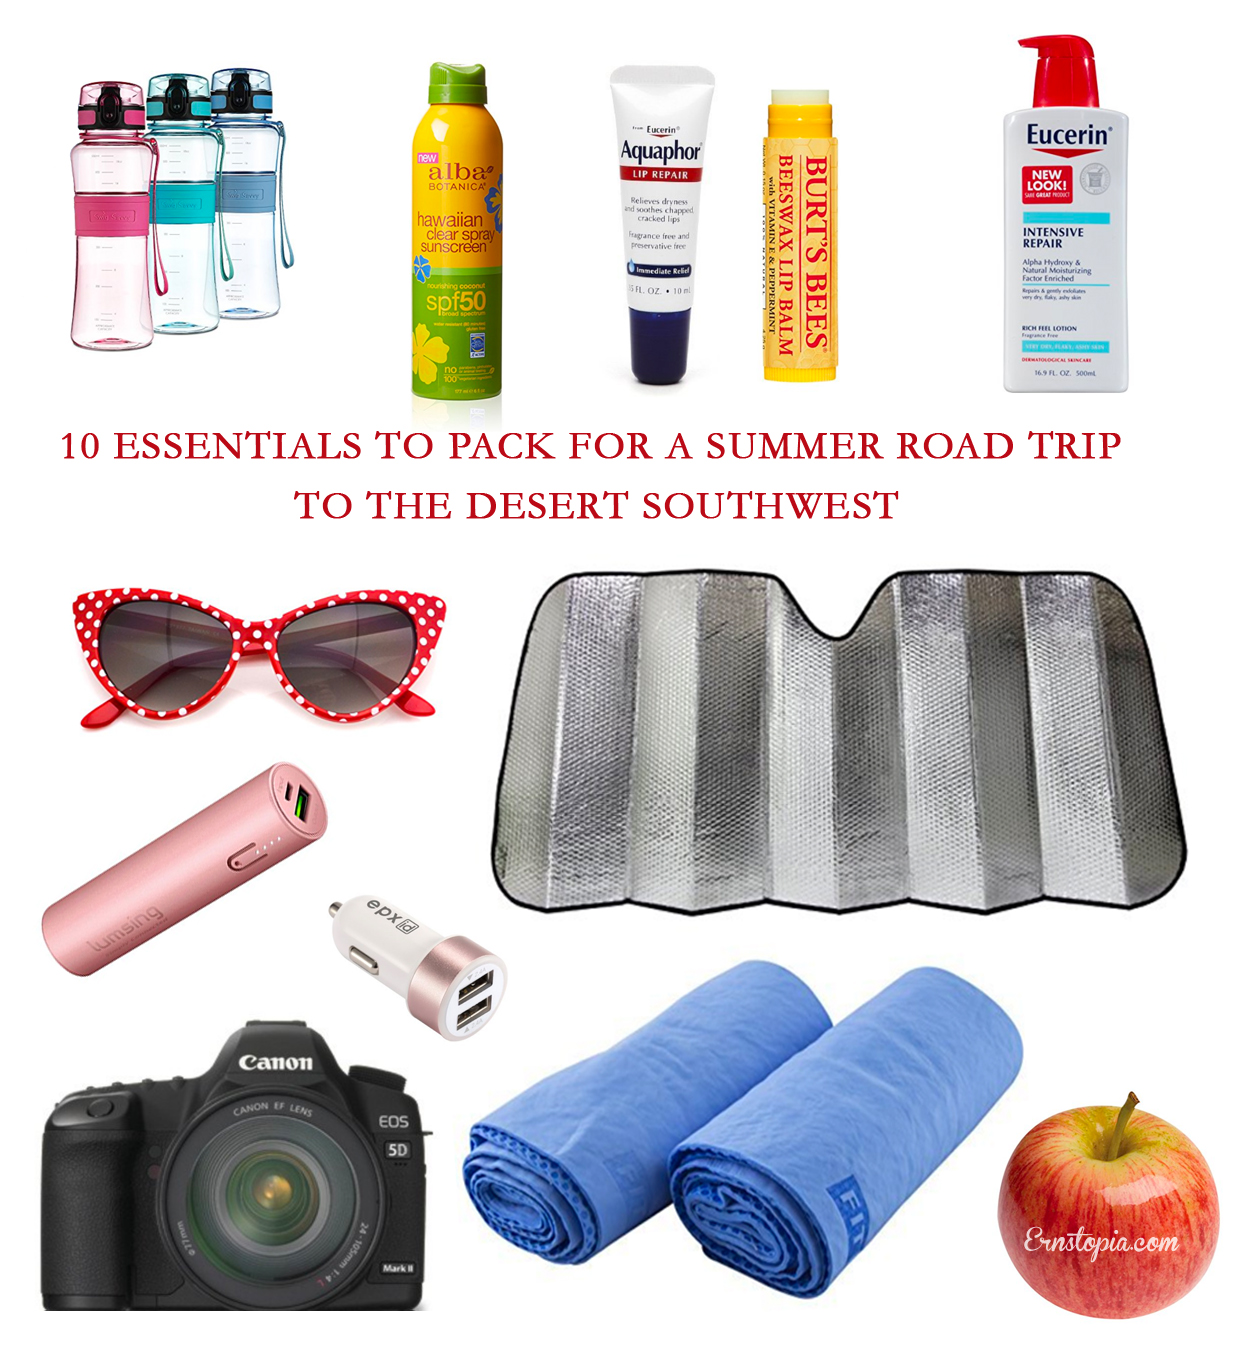 10 Essentials to pack for a summer road trip to the desert southwest